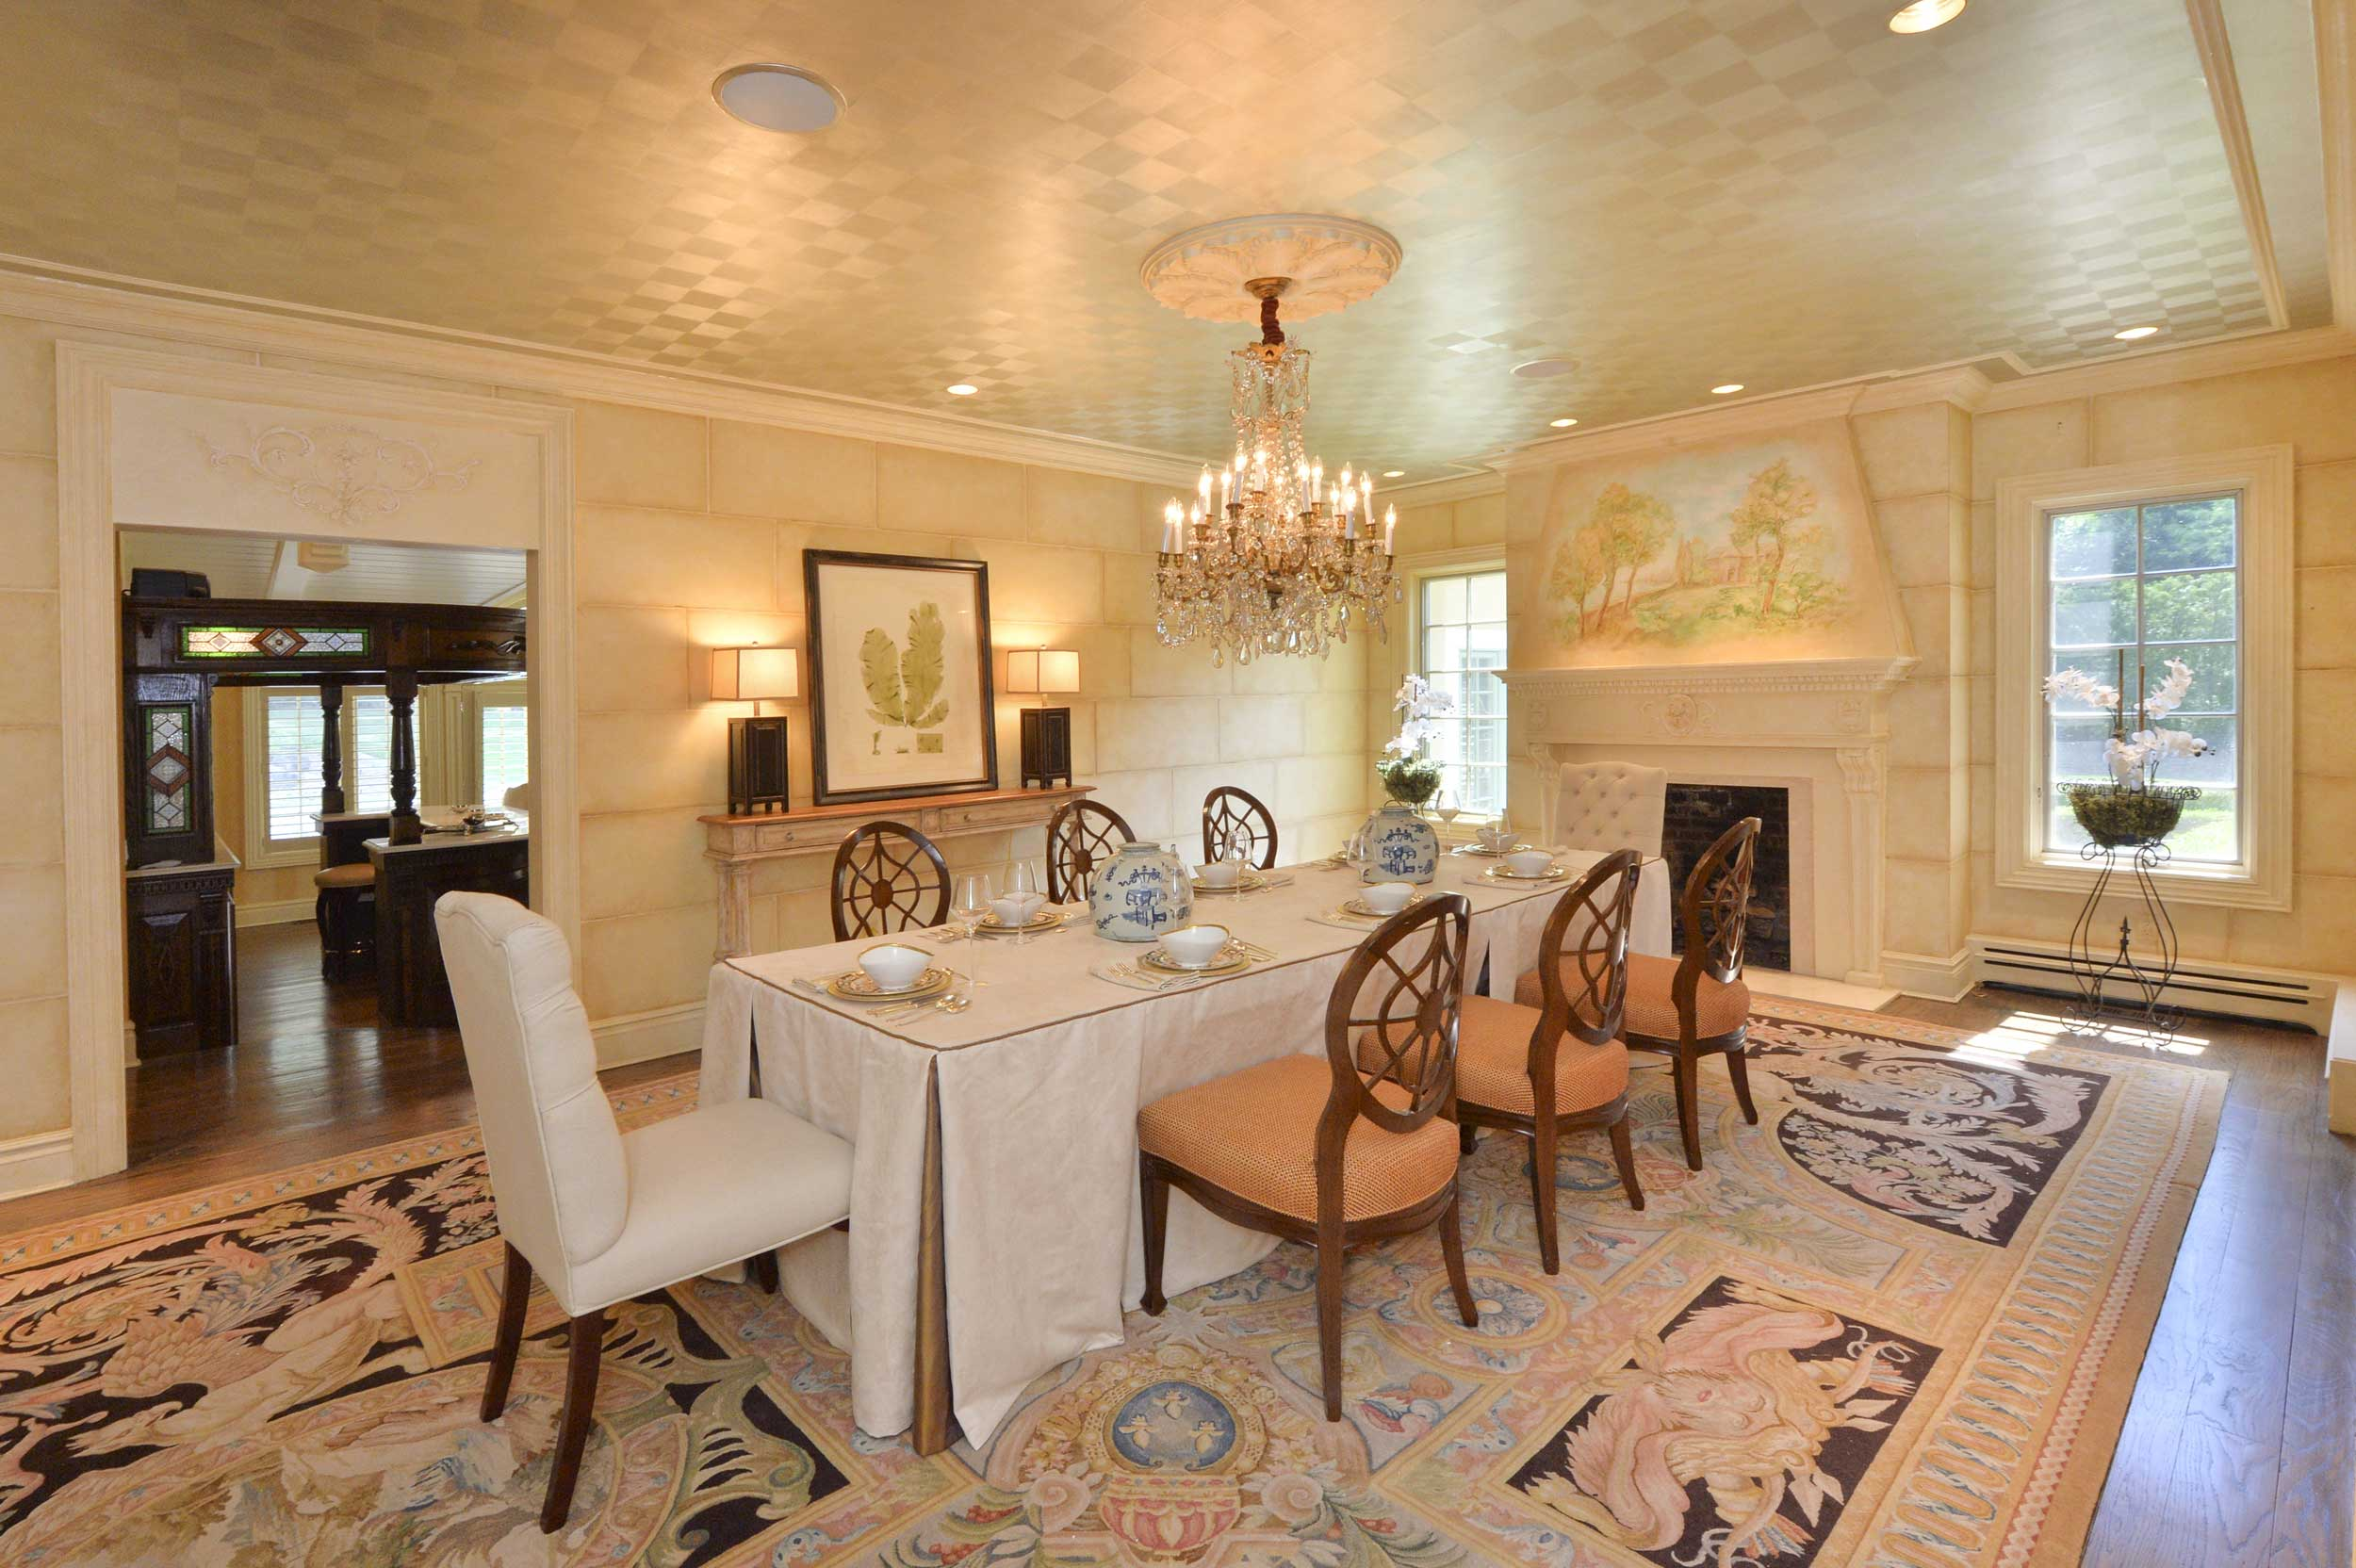 Michael Moore can picture hosting an artistic fundraiser at this home, furnishing the dining room with a George III Mahogany dining table.